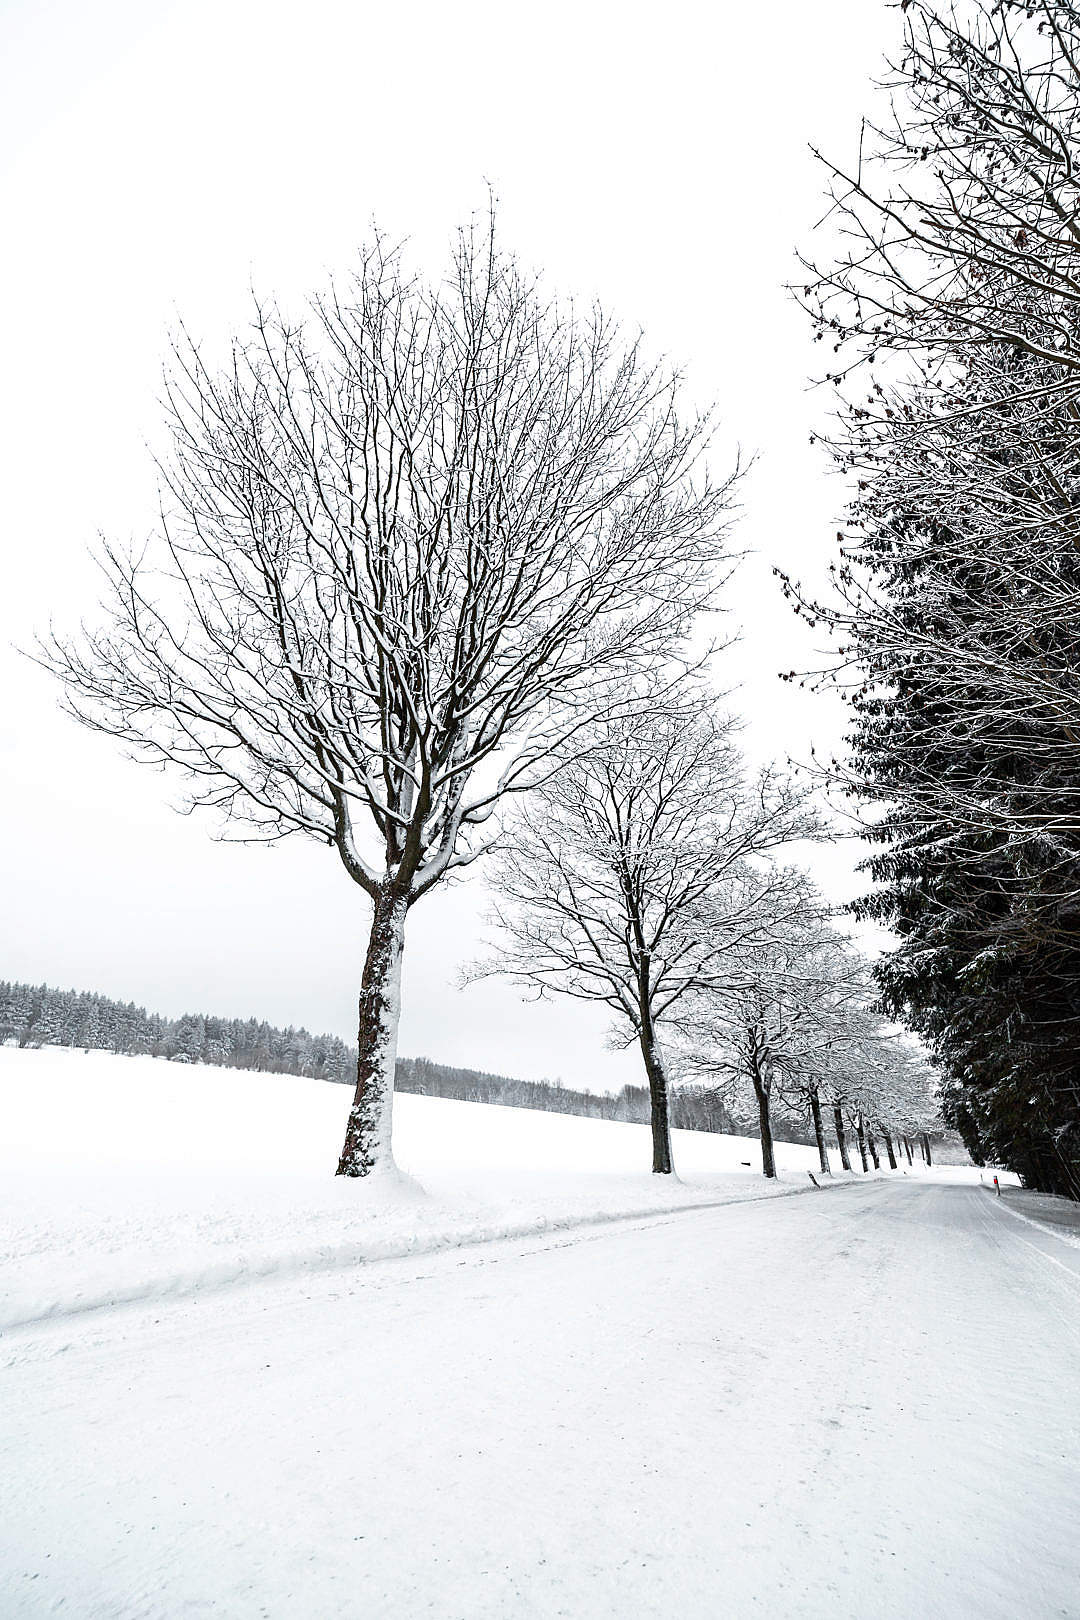 Download Alley of Trees Covered with Snow FREE Stock Photo